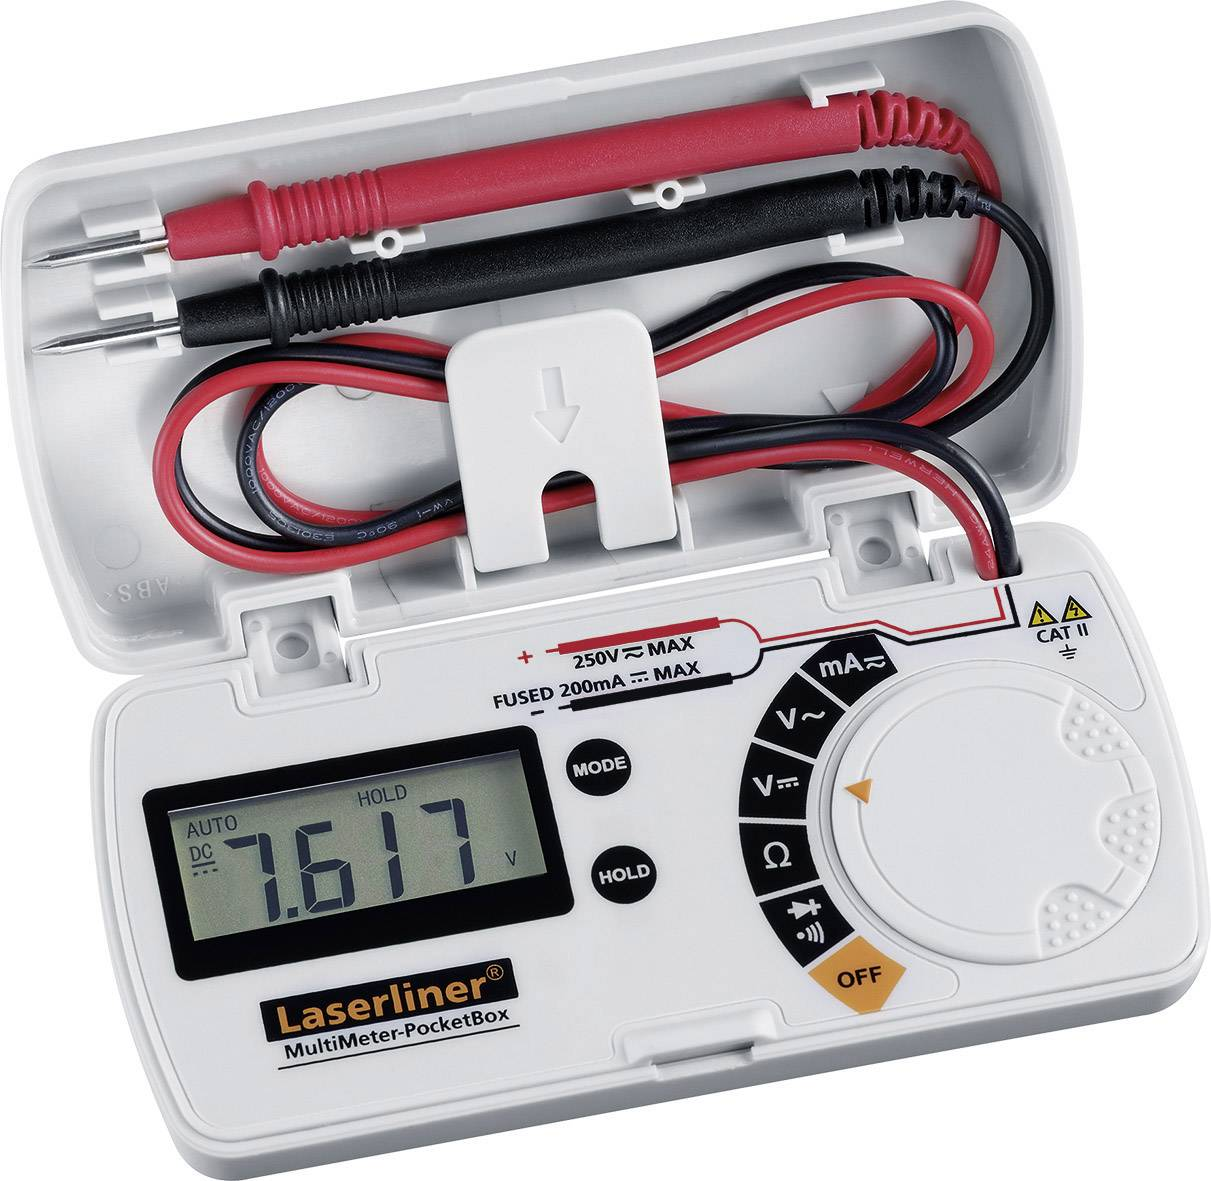 Digitální multimetr Laserliner MultiMeter Pocket Box 083.028A